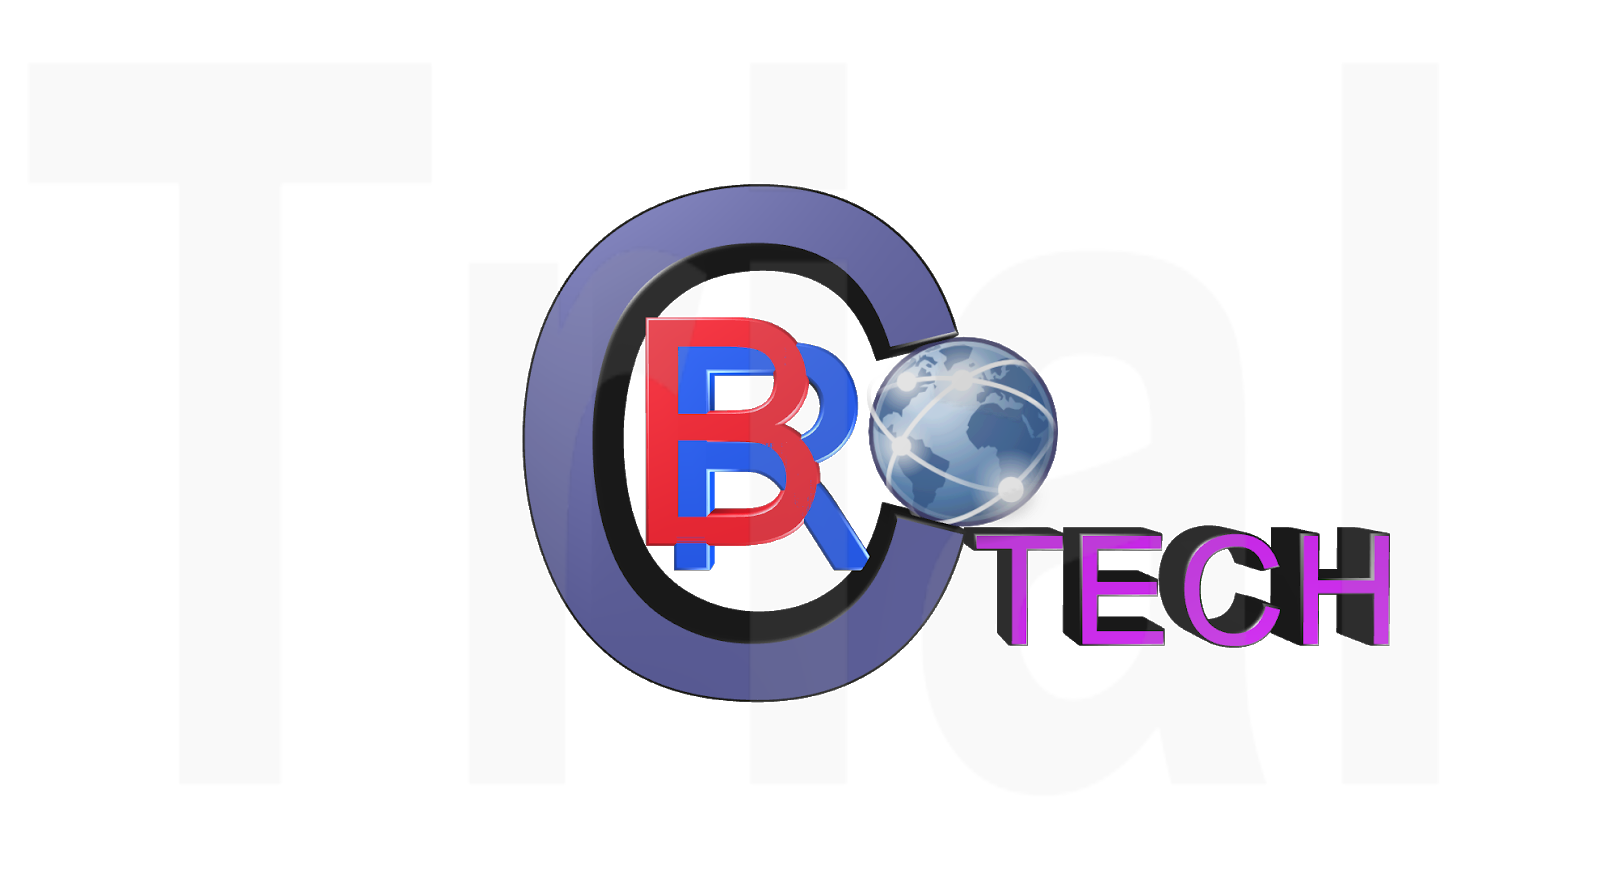 BRC TECH latest technology news and gadget review